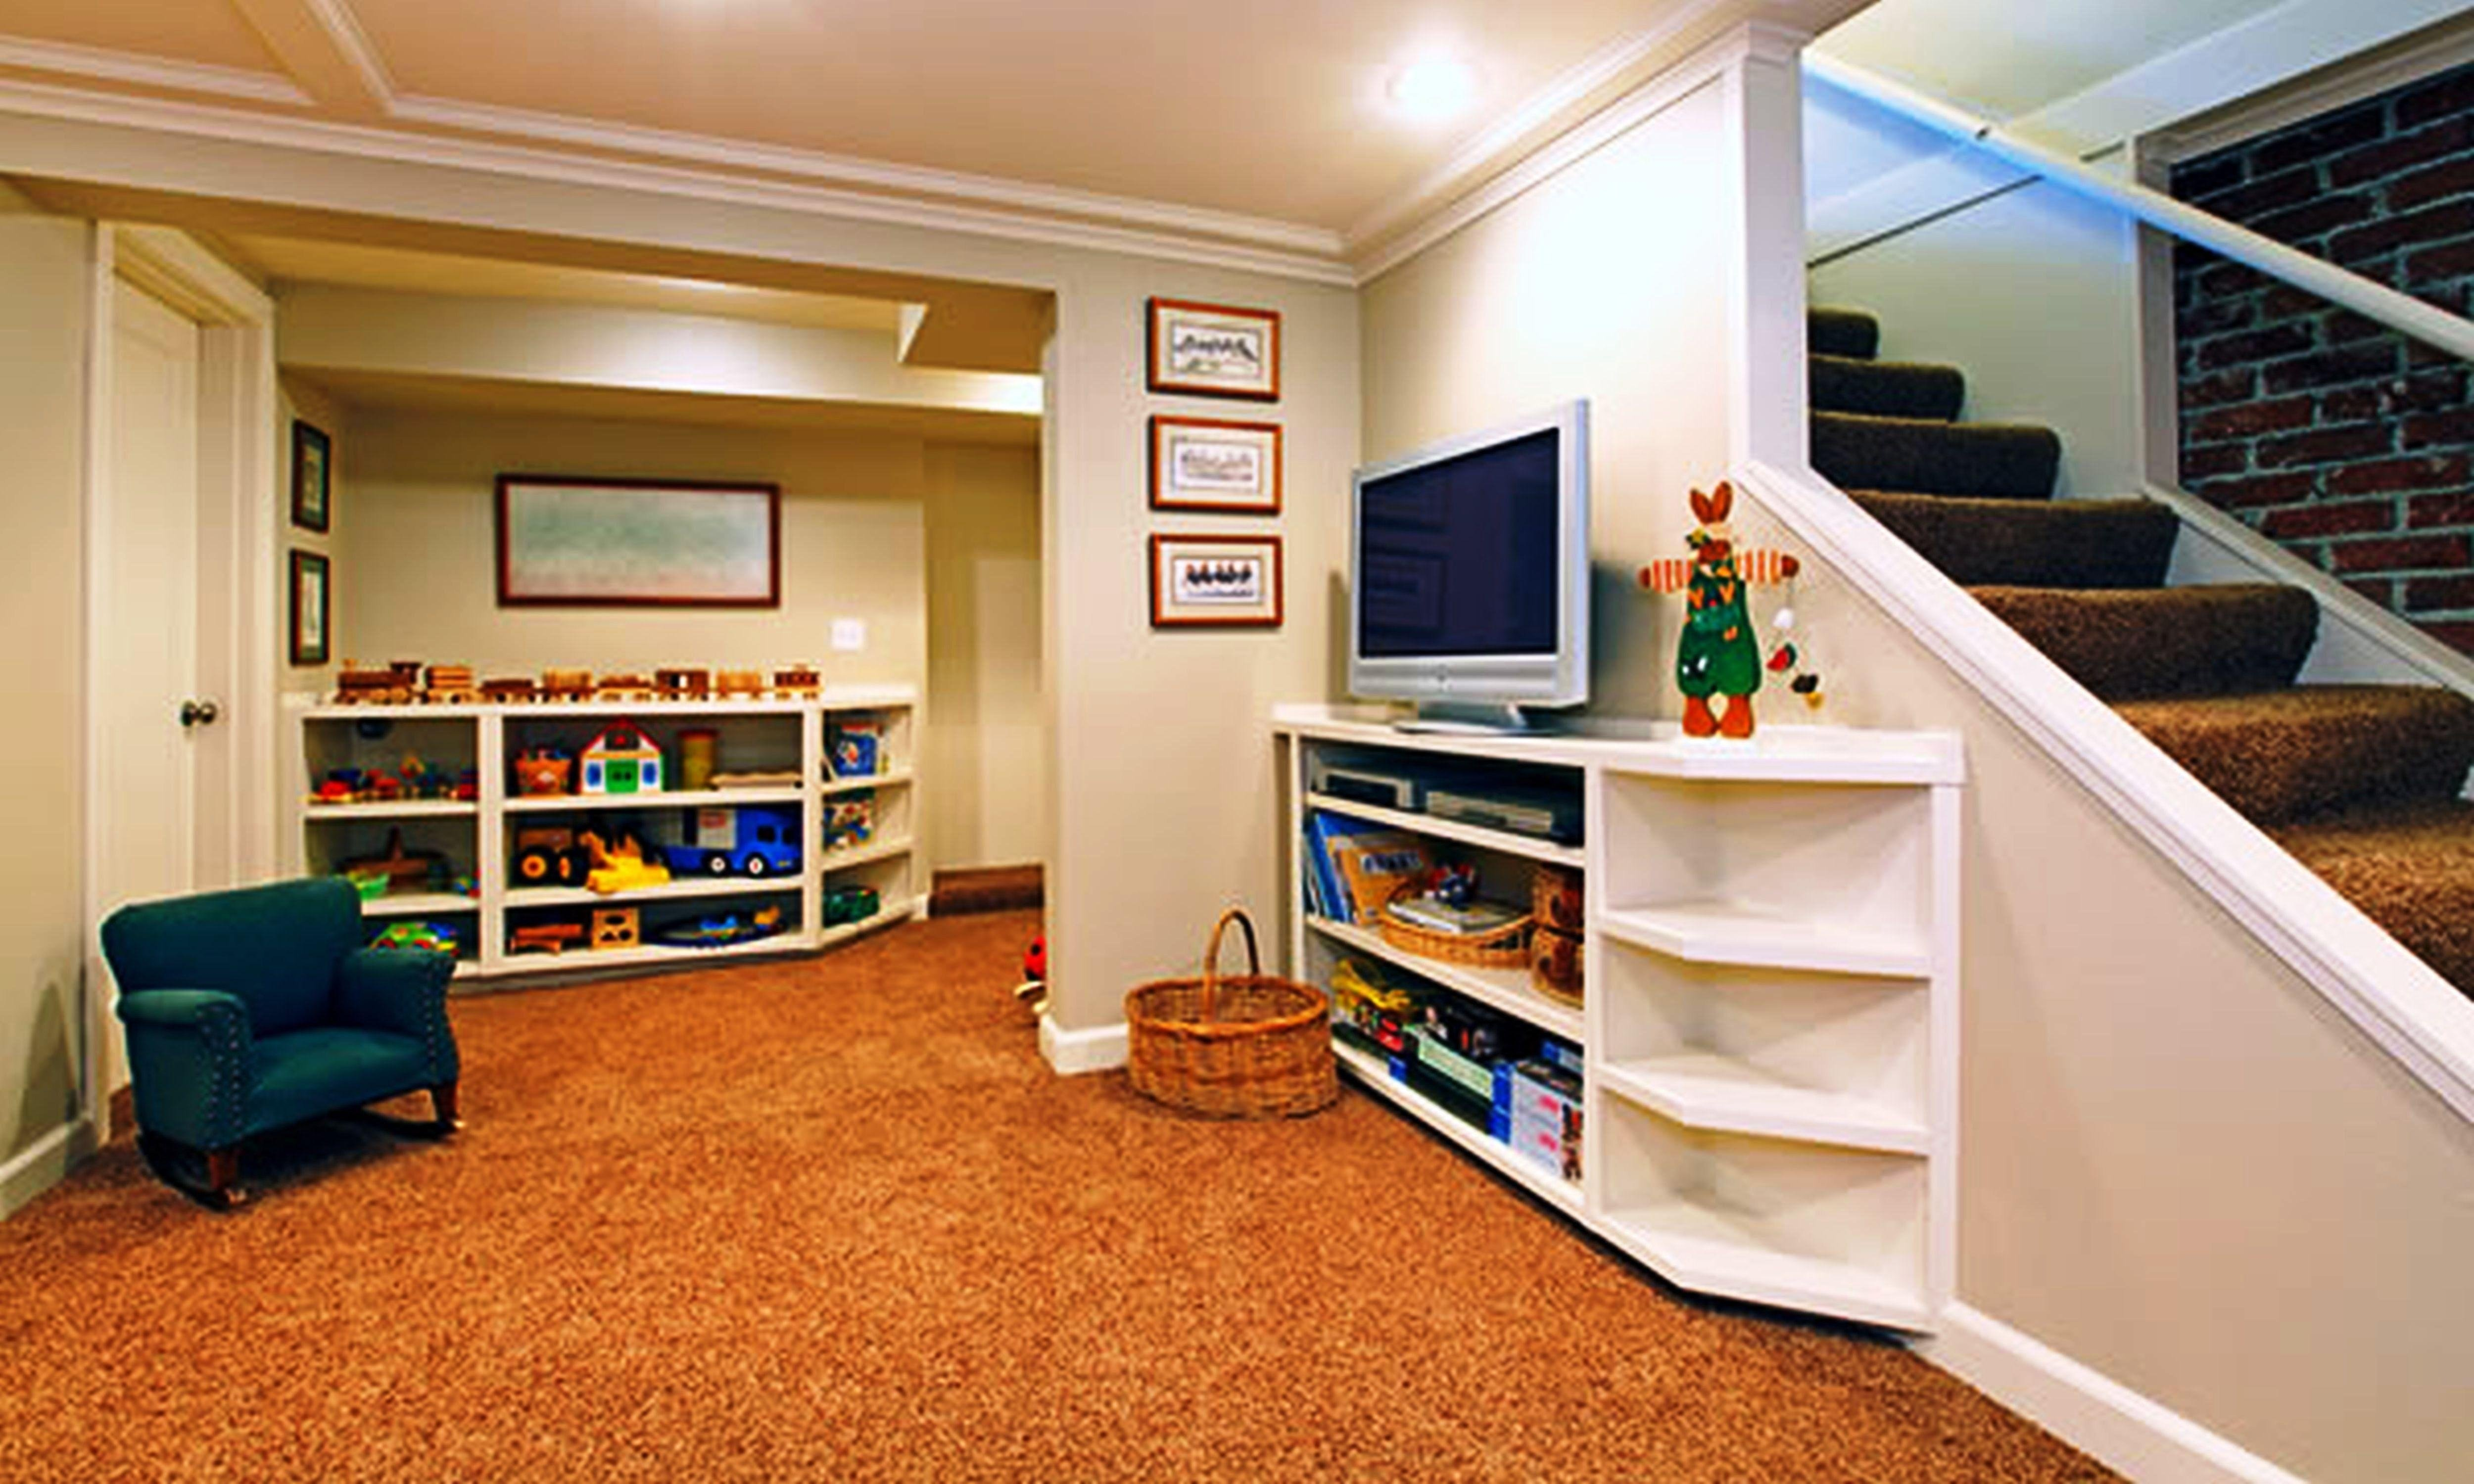 10 Stunning Finished Basement Ideas On A Budget finished basement ideas small on with hd resolution 5000x3000 pixels 2020